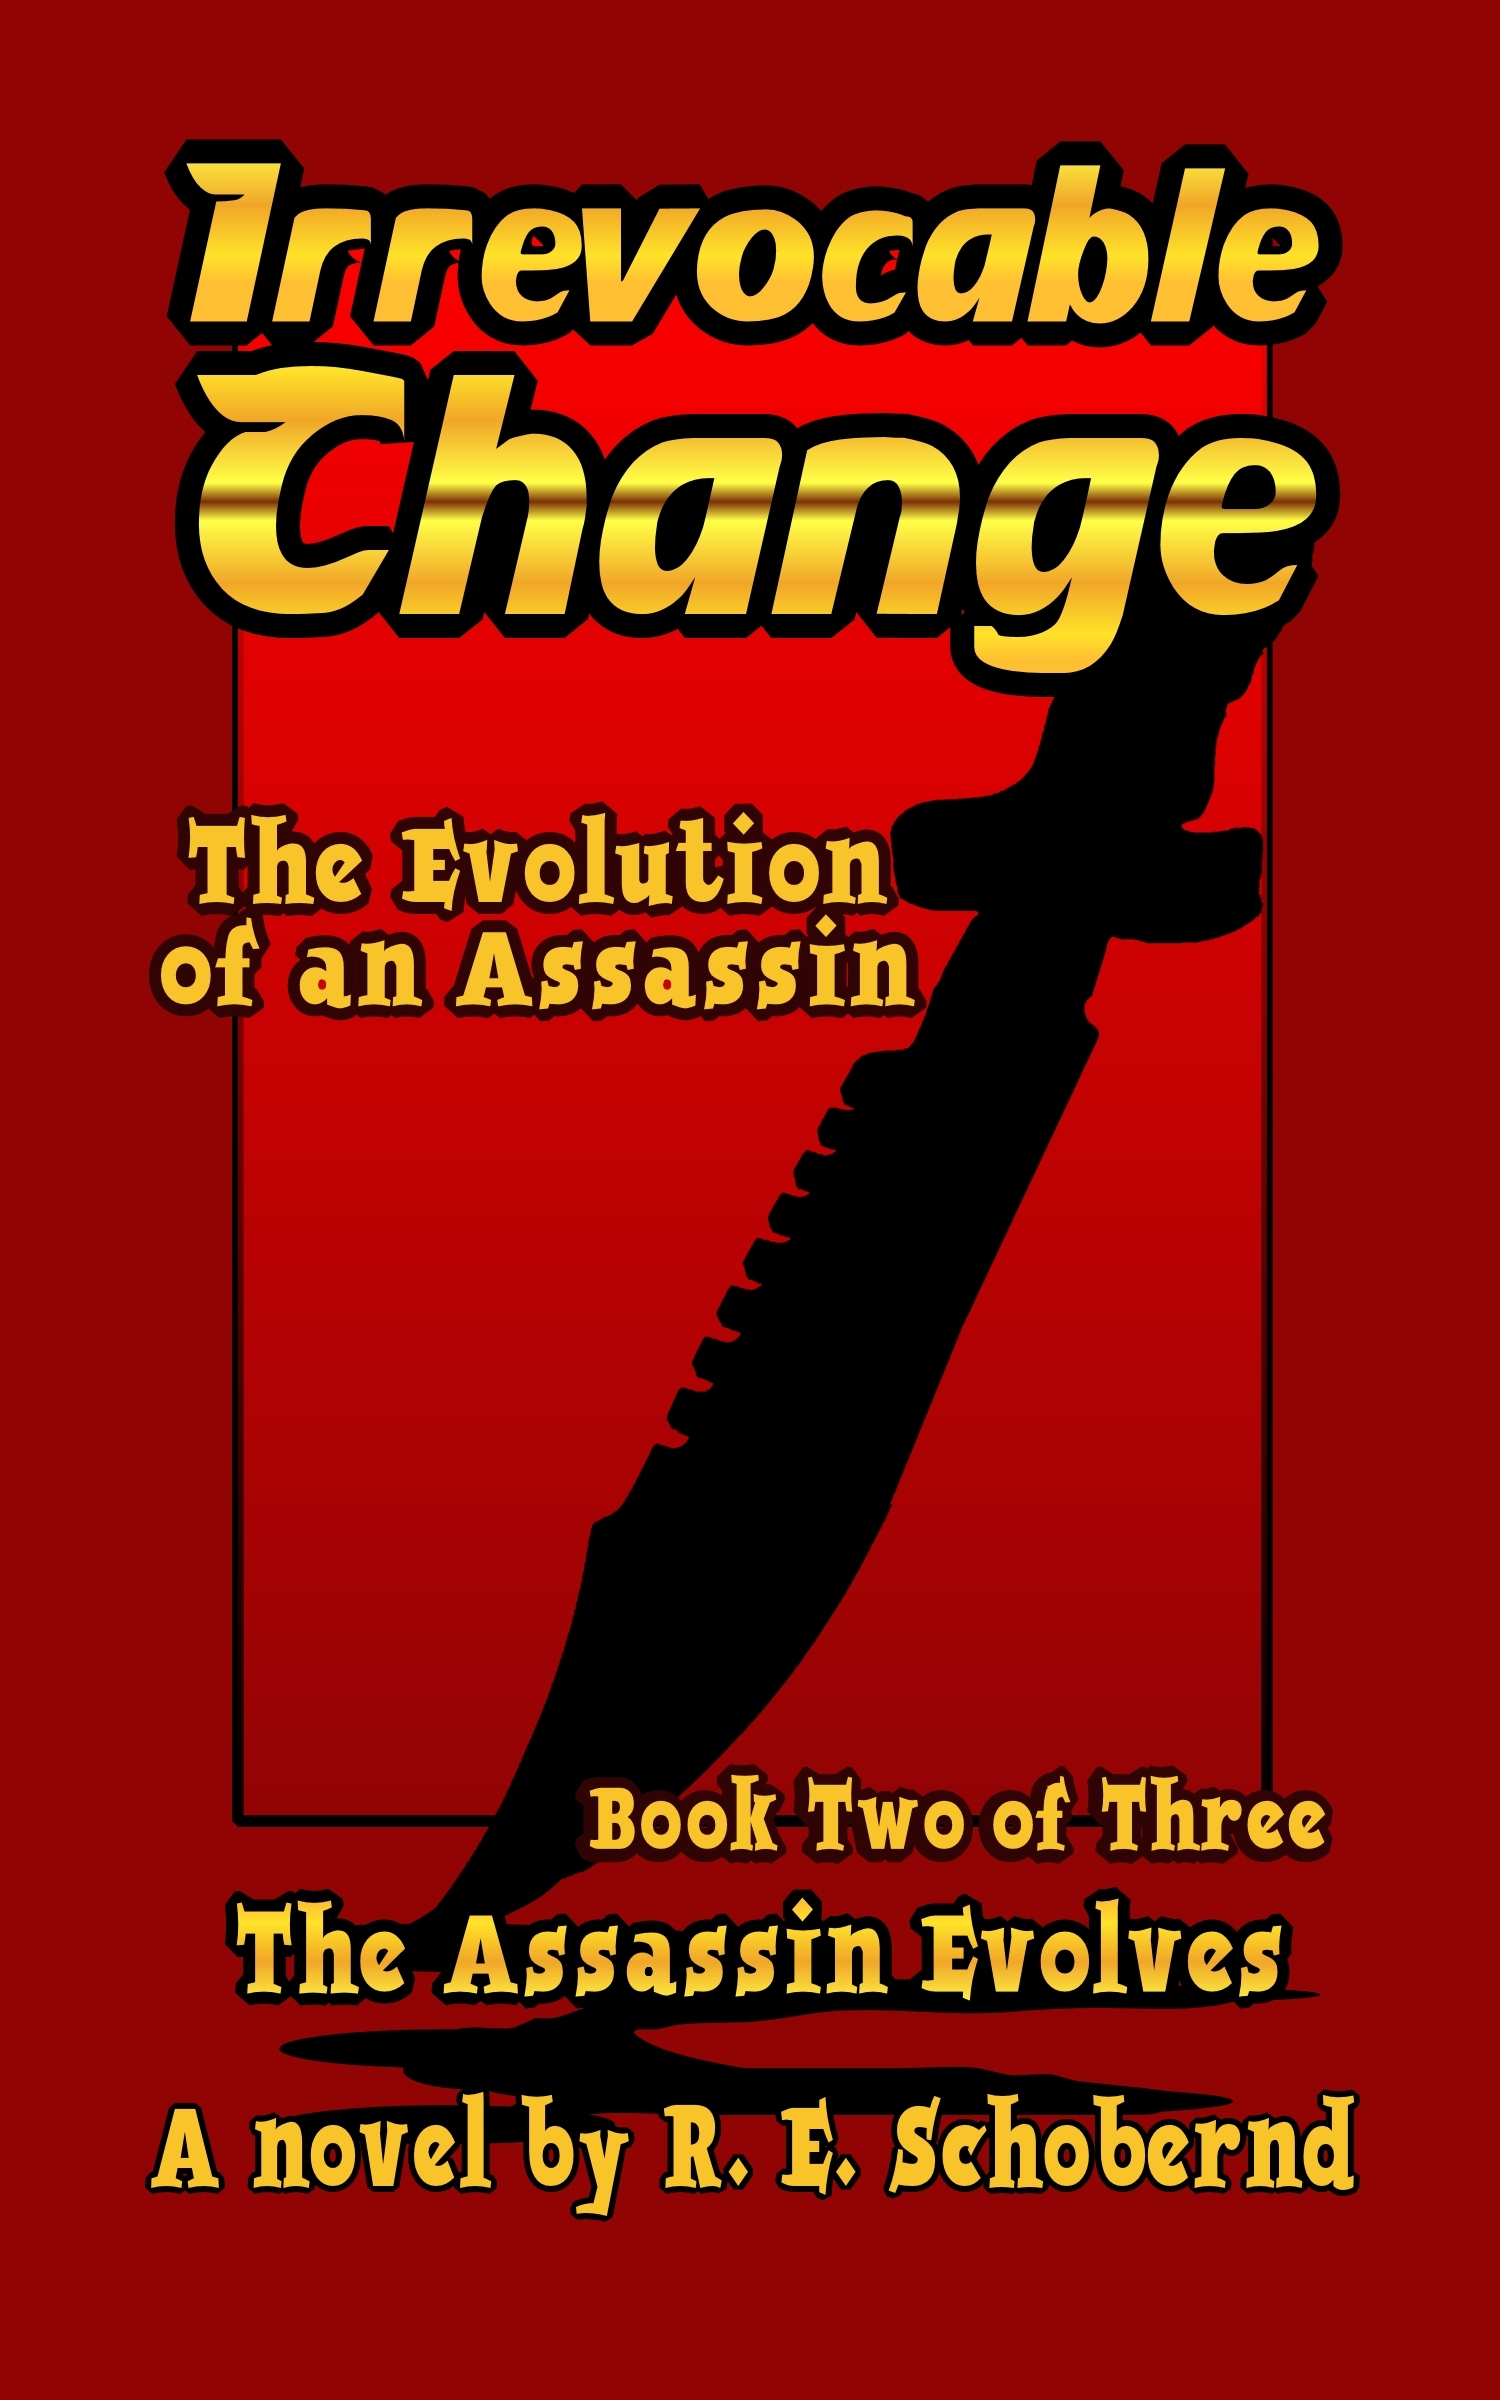 The Assassin Evolves book two of the Irrevocable Change trilogy